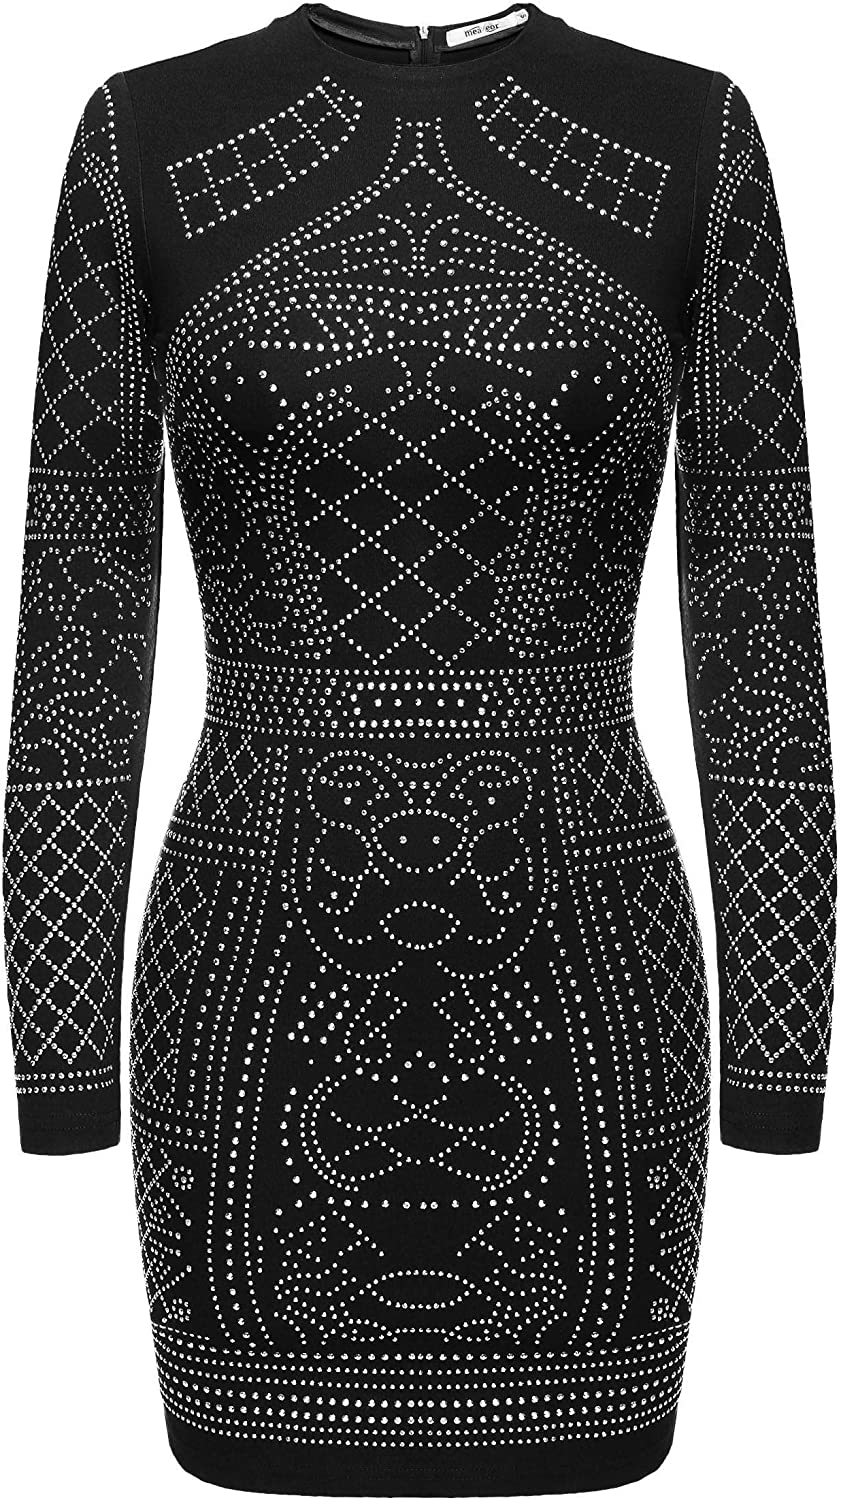 Meaneor Women's Long Sleeve Rhinestone Embellished Vintage Cocktail Dresses